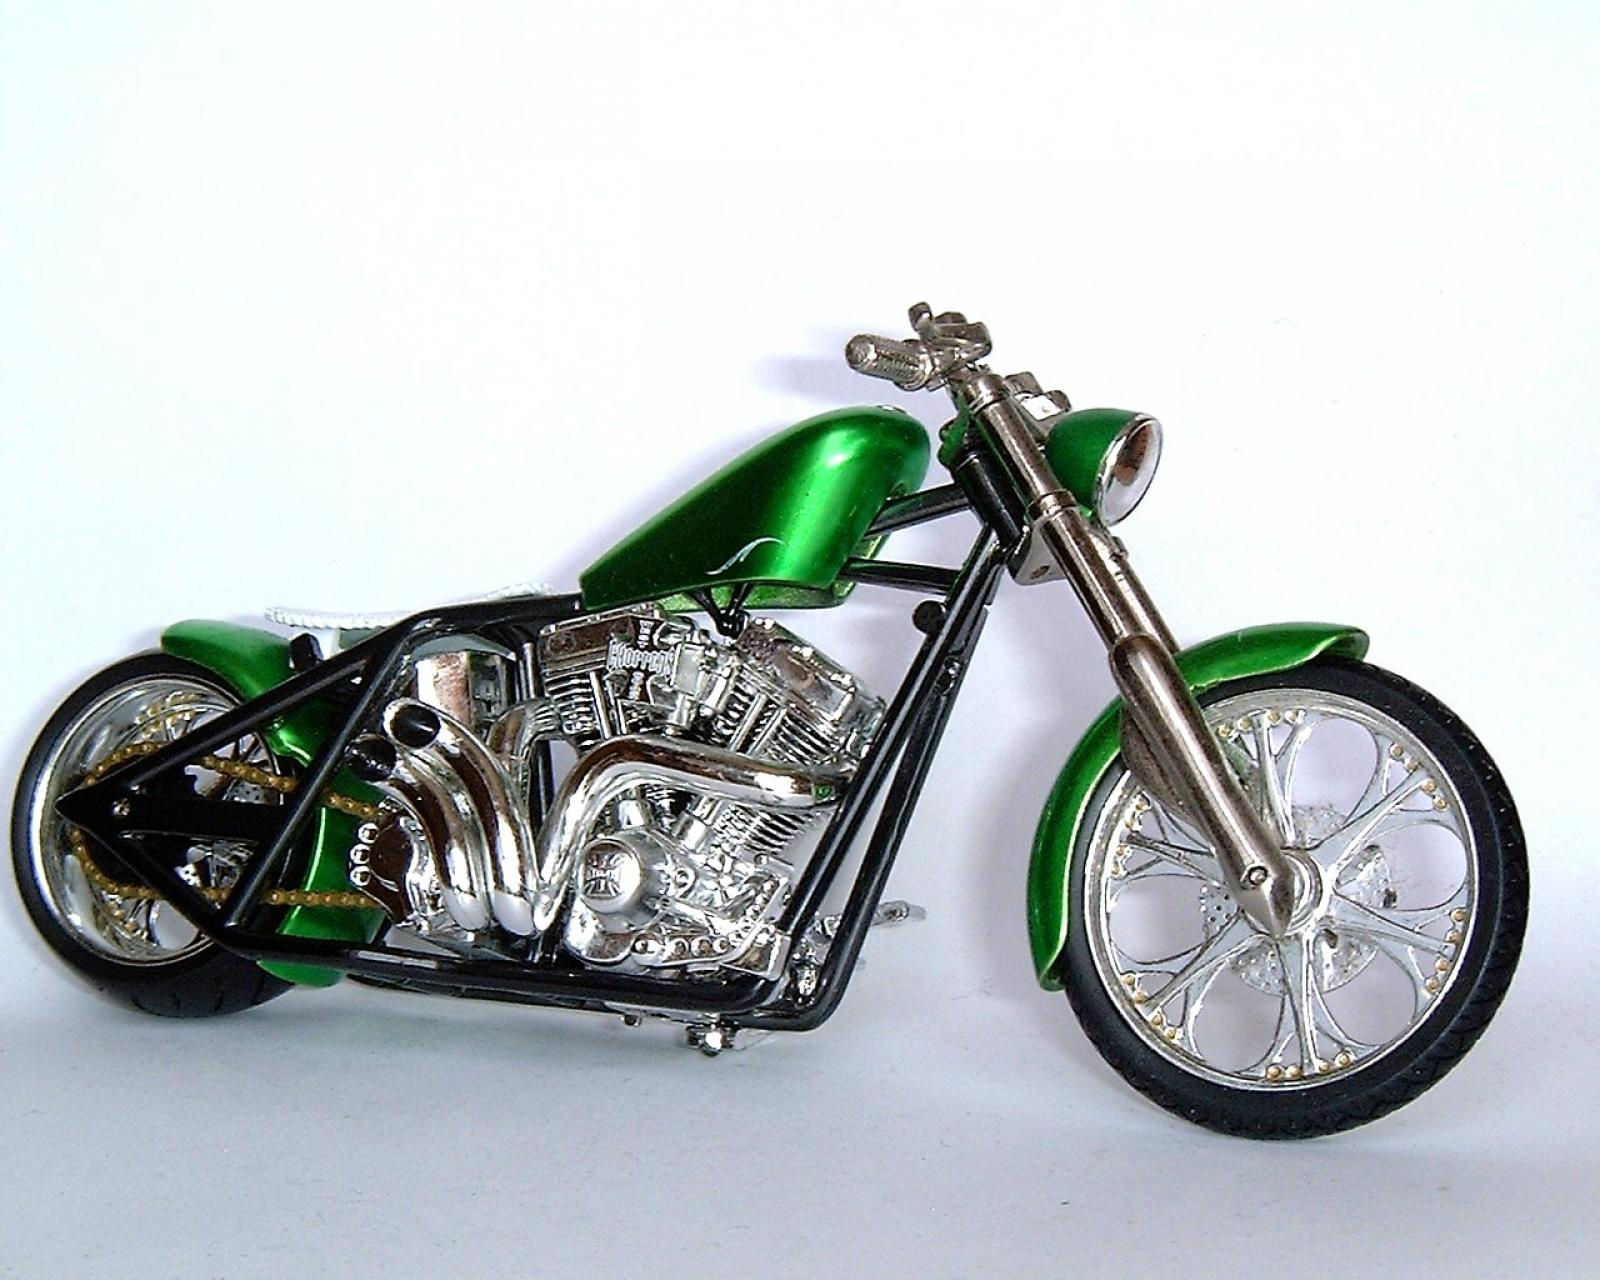 2010 west coast choppers dominator moto zombdrive com. Black Bedroom Furniture Sets. Home Design Ideas